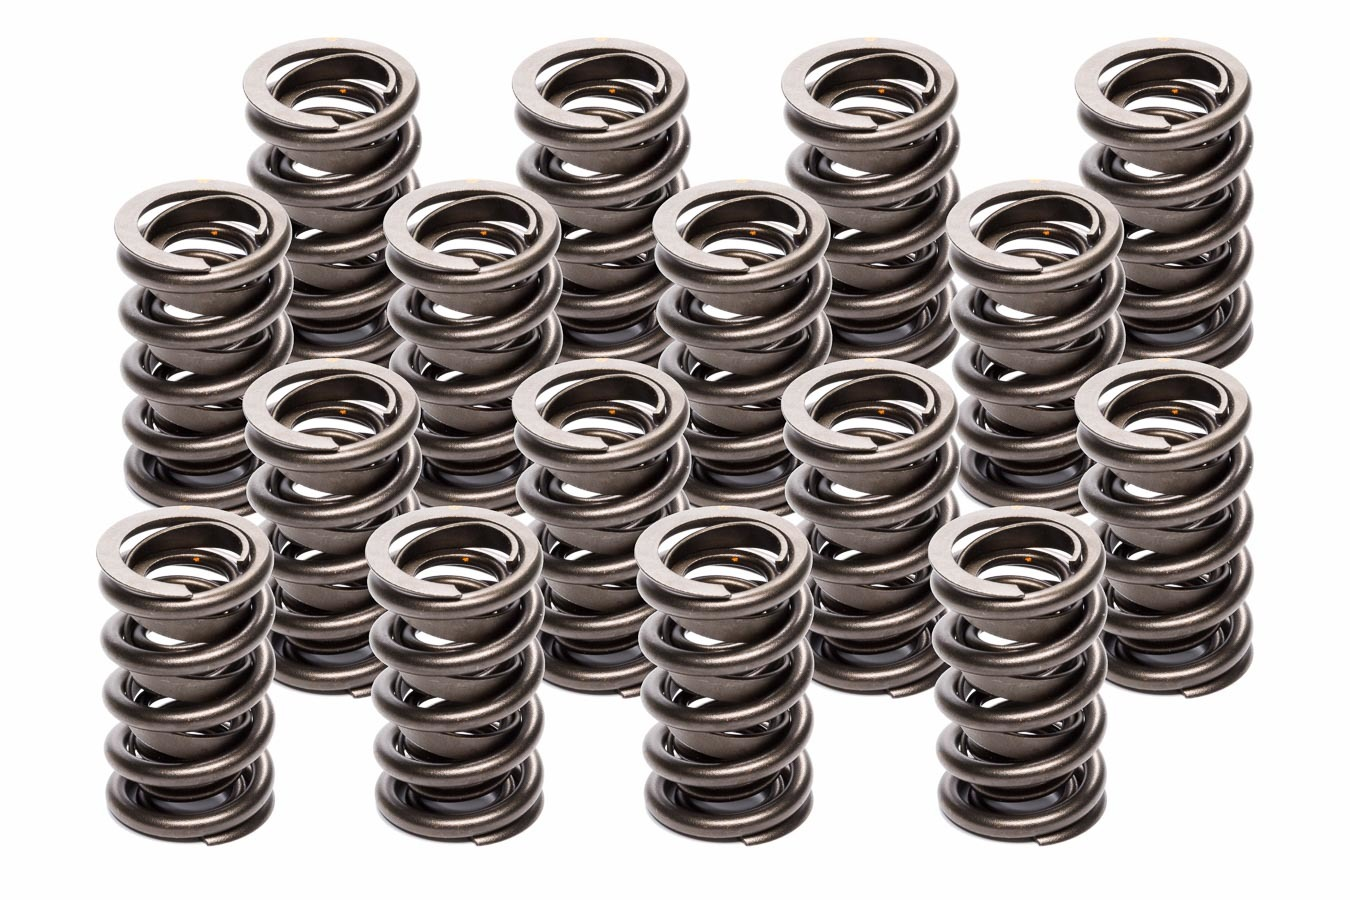 Lunati 74650-16 Valve Spring, Dual Spring / Damper, 506 lb/in Spring Rate, 1.170 in Coil Bind, 1.514 in OD, Set of 16